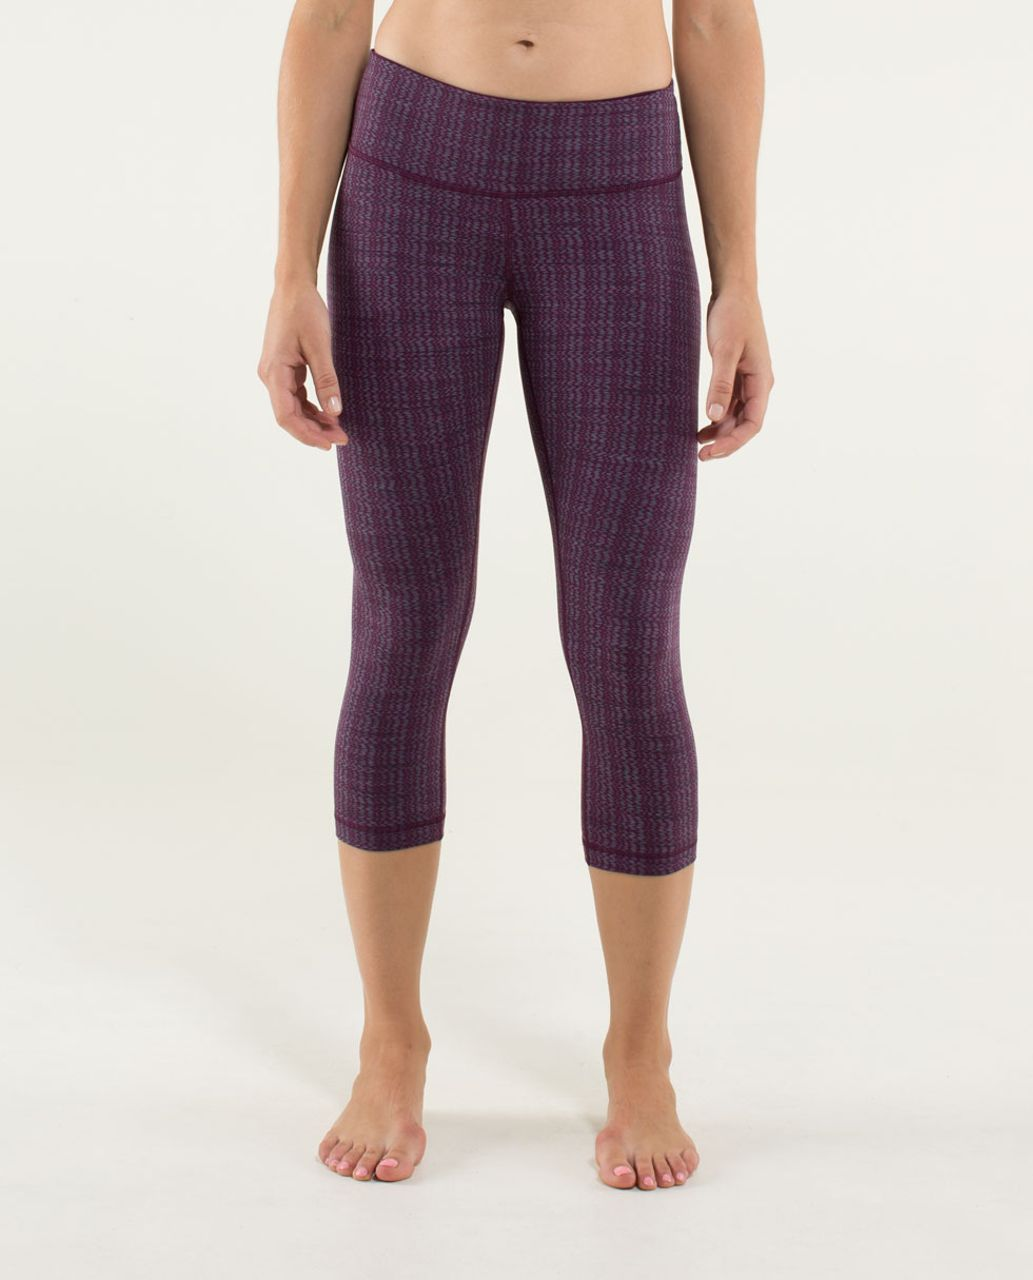 Lululemon Wunder Under Crop *Textured - Ziggy Wee September Plum